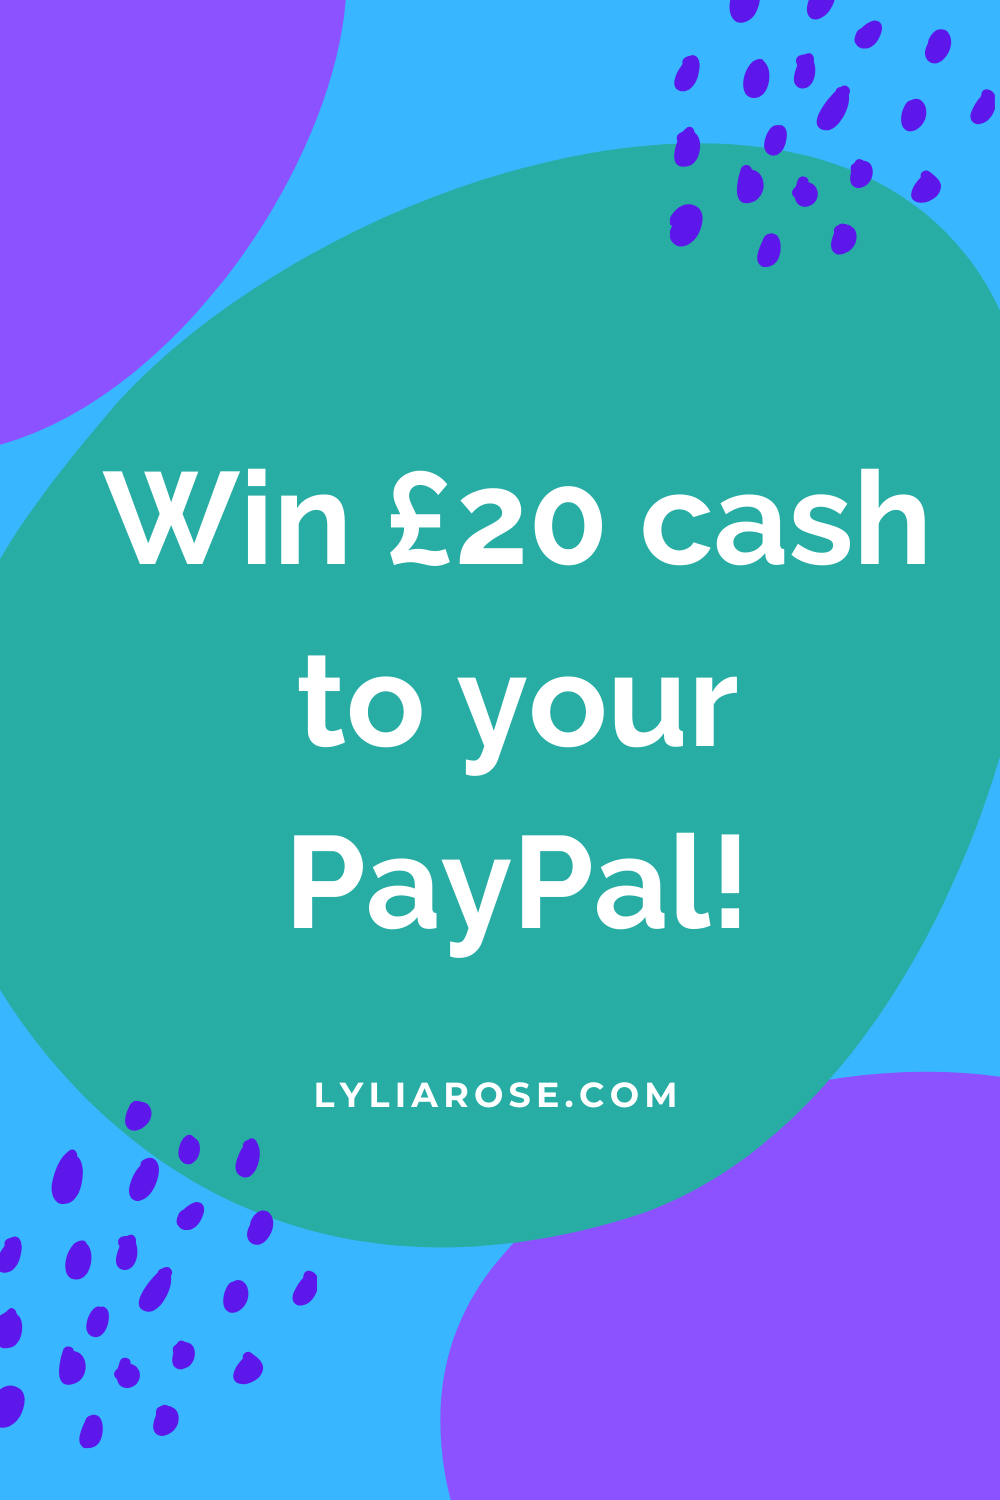 Win £20 cash to your PayPal!